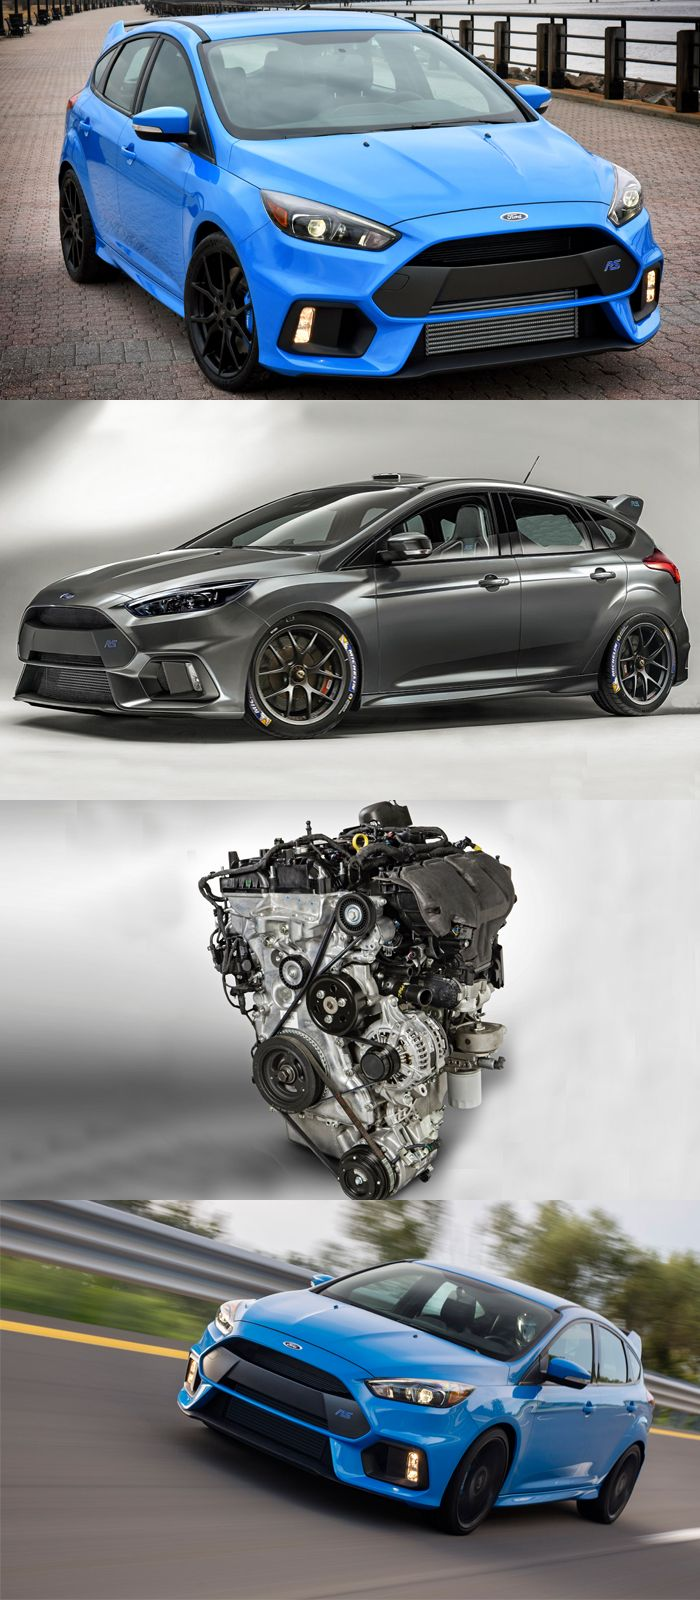 ford focus rs500 comes with subtle changes for more details visit link http